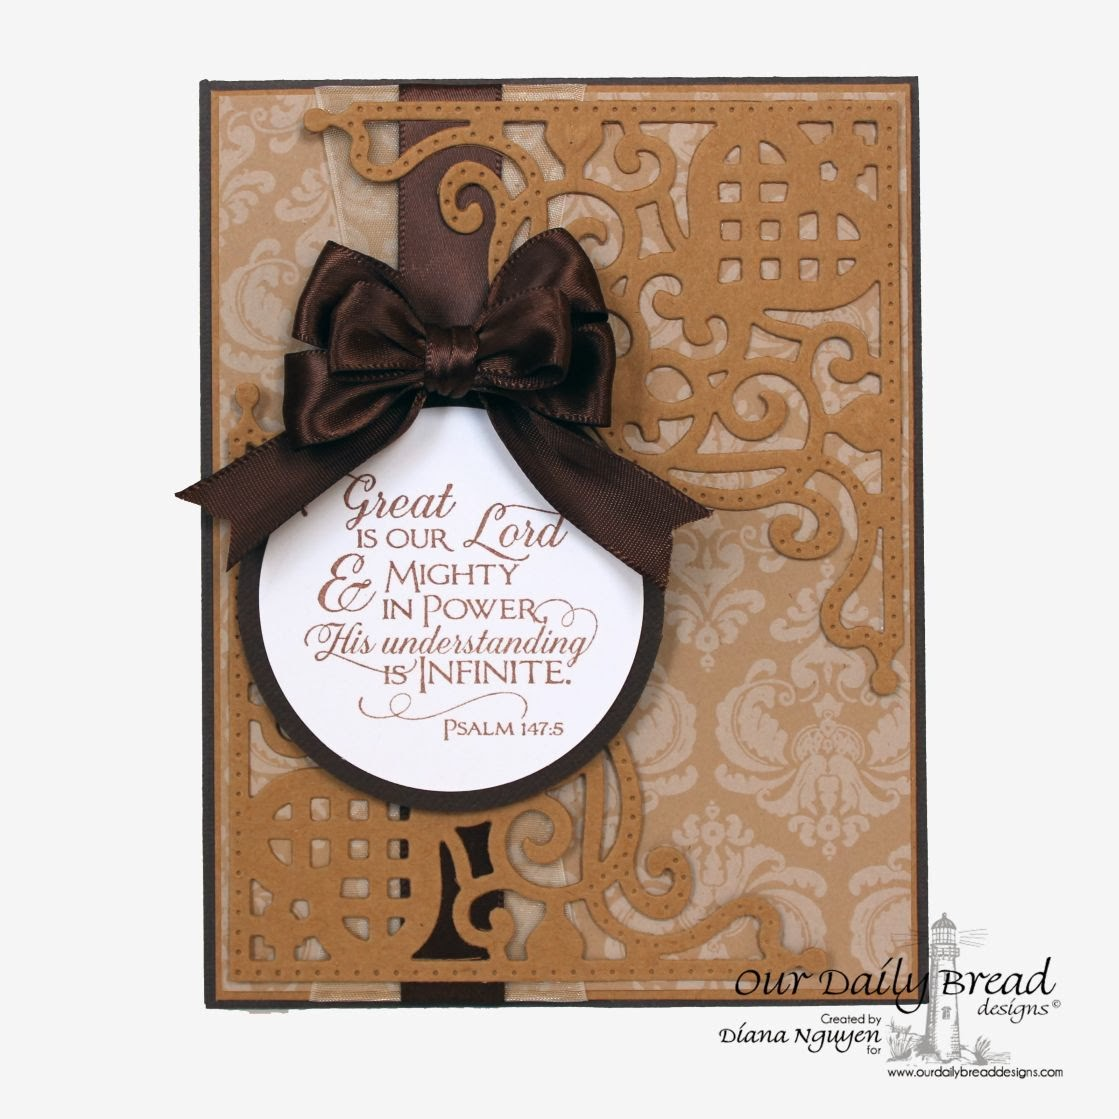 Diana Nguyen, Our Daily Bread Designs, Scripture Collection 11